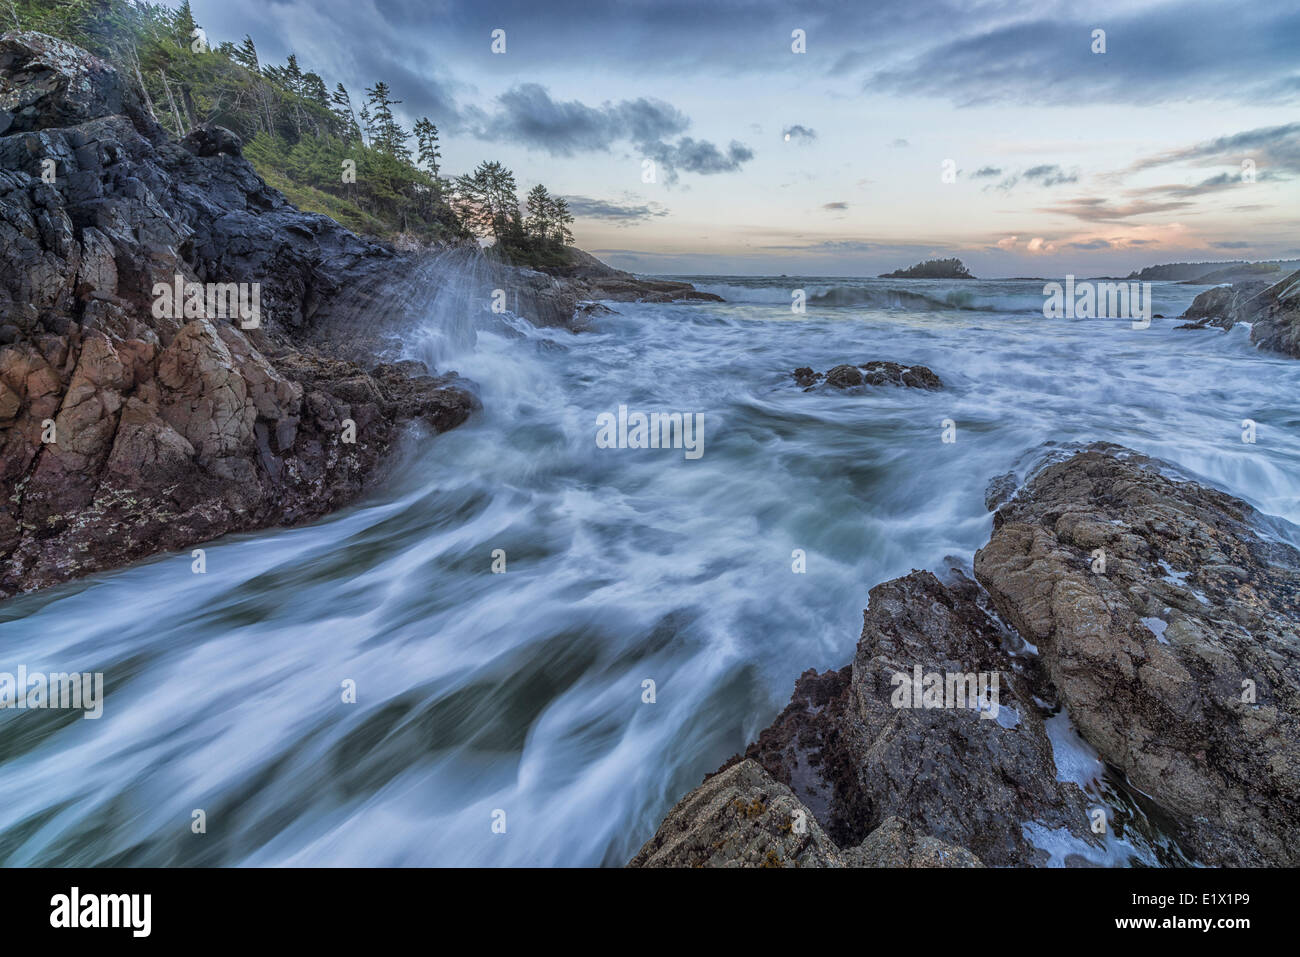 Dawn breaks over Crystal Cove Tofino as the tide rises to cover the rocks large waves crash against the shoreline - Stock Image